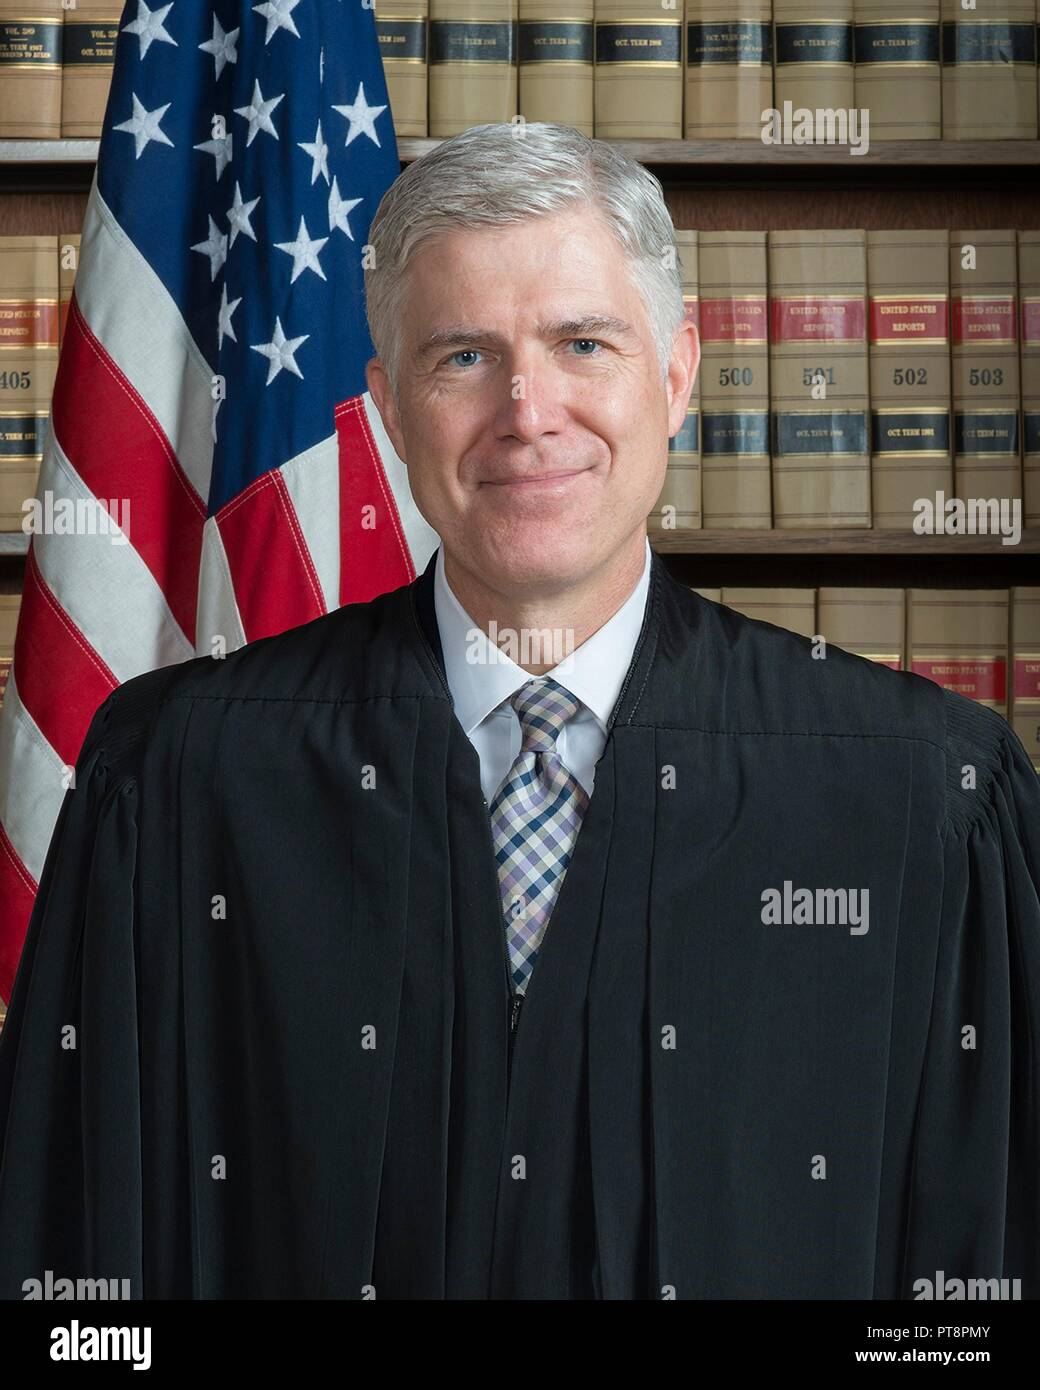 Official portrait of Associate Justice Neil Gorsuch in his robes at the U.S. Supreme Court Building May 25, 2017 in Washington, DC. - Stock Image